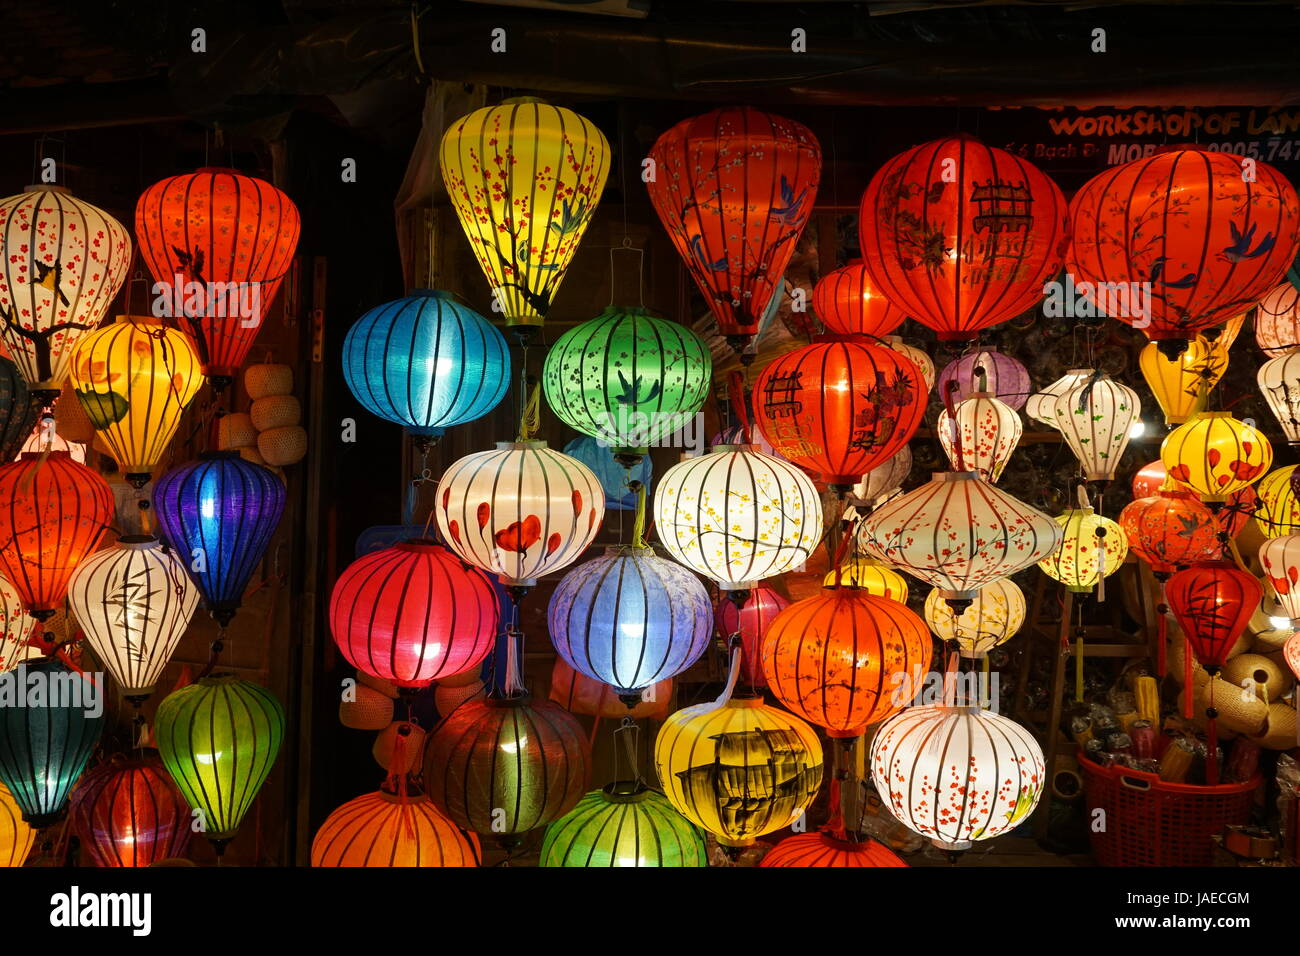 Lanterns shining everywhere in Hoi An's old town at night. - Stock Image